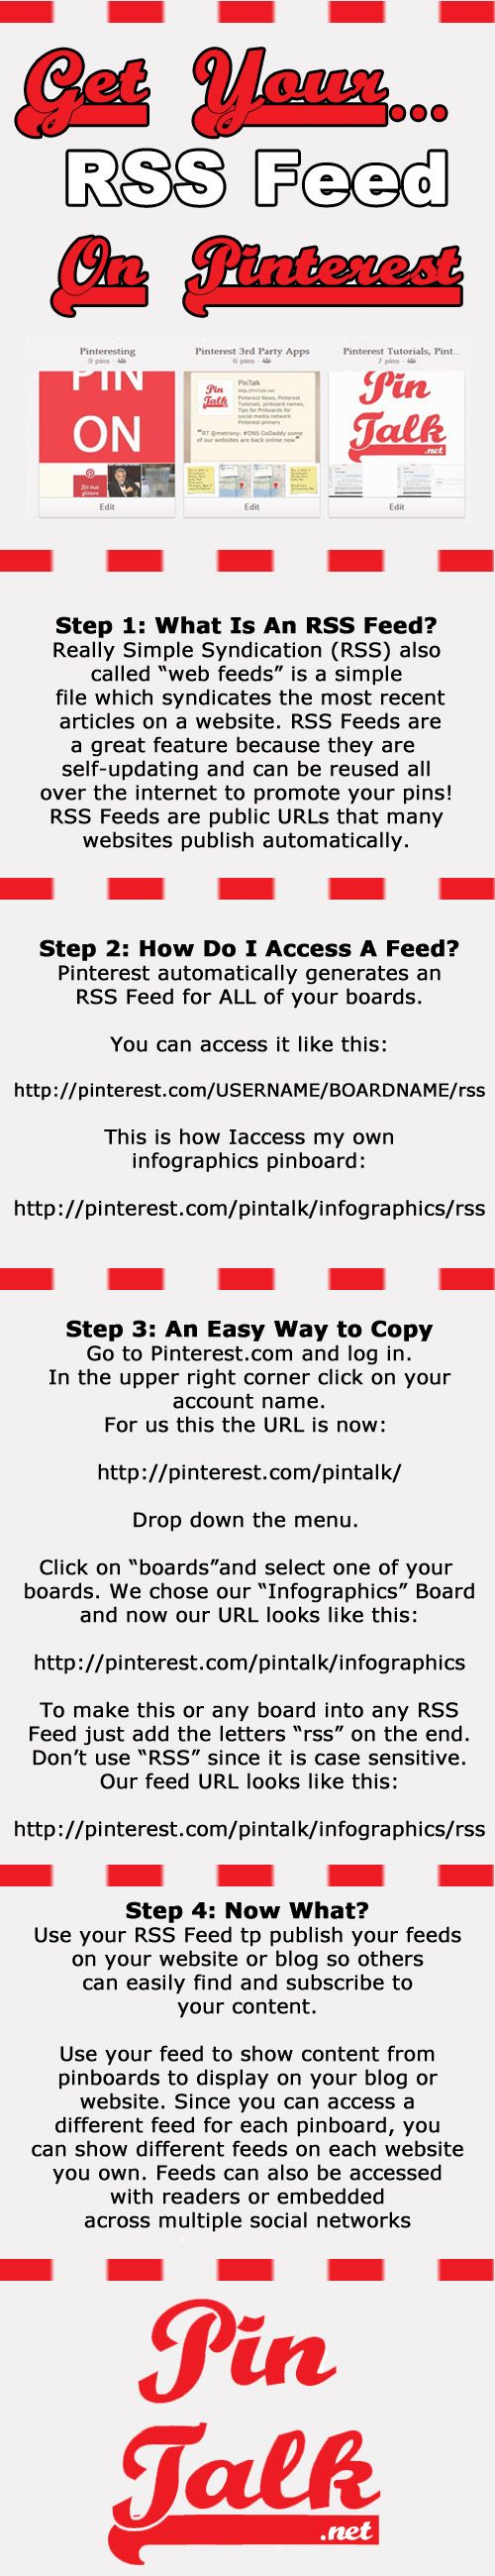 Pinterest Rss Feed Pinterest Tutorial Rss Feed Social Media